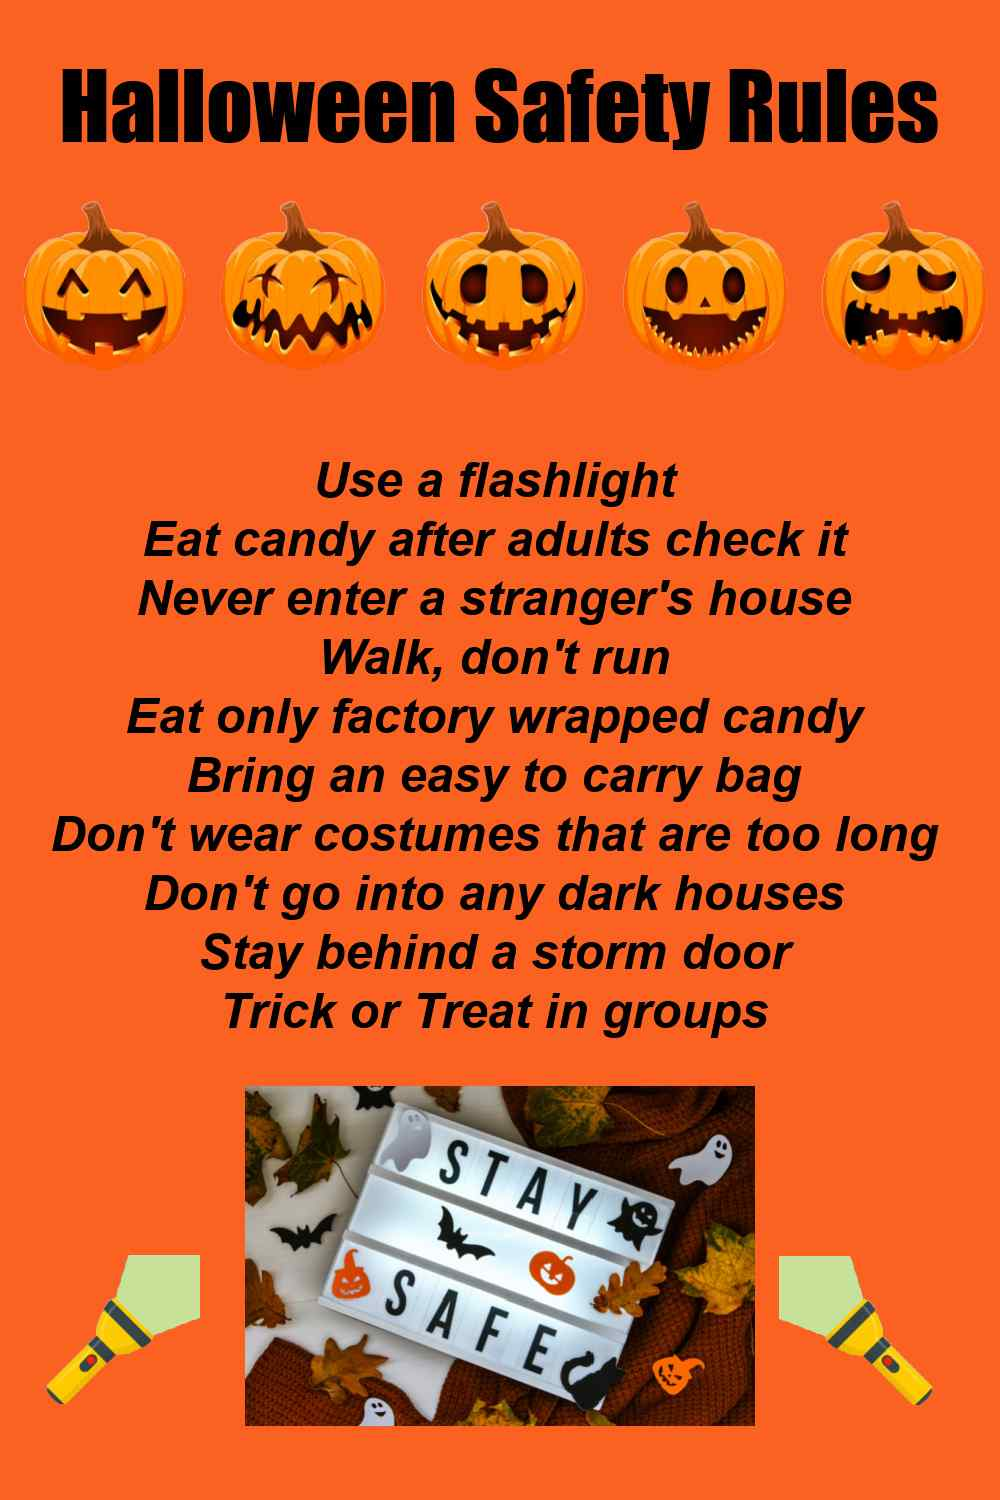 Halloween safety list of rules.